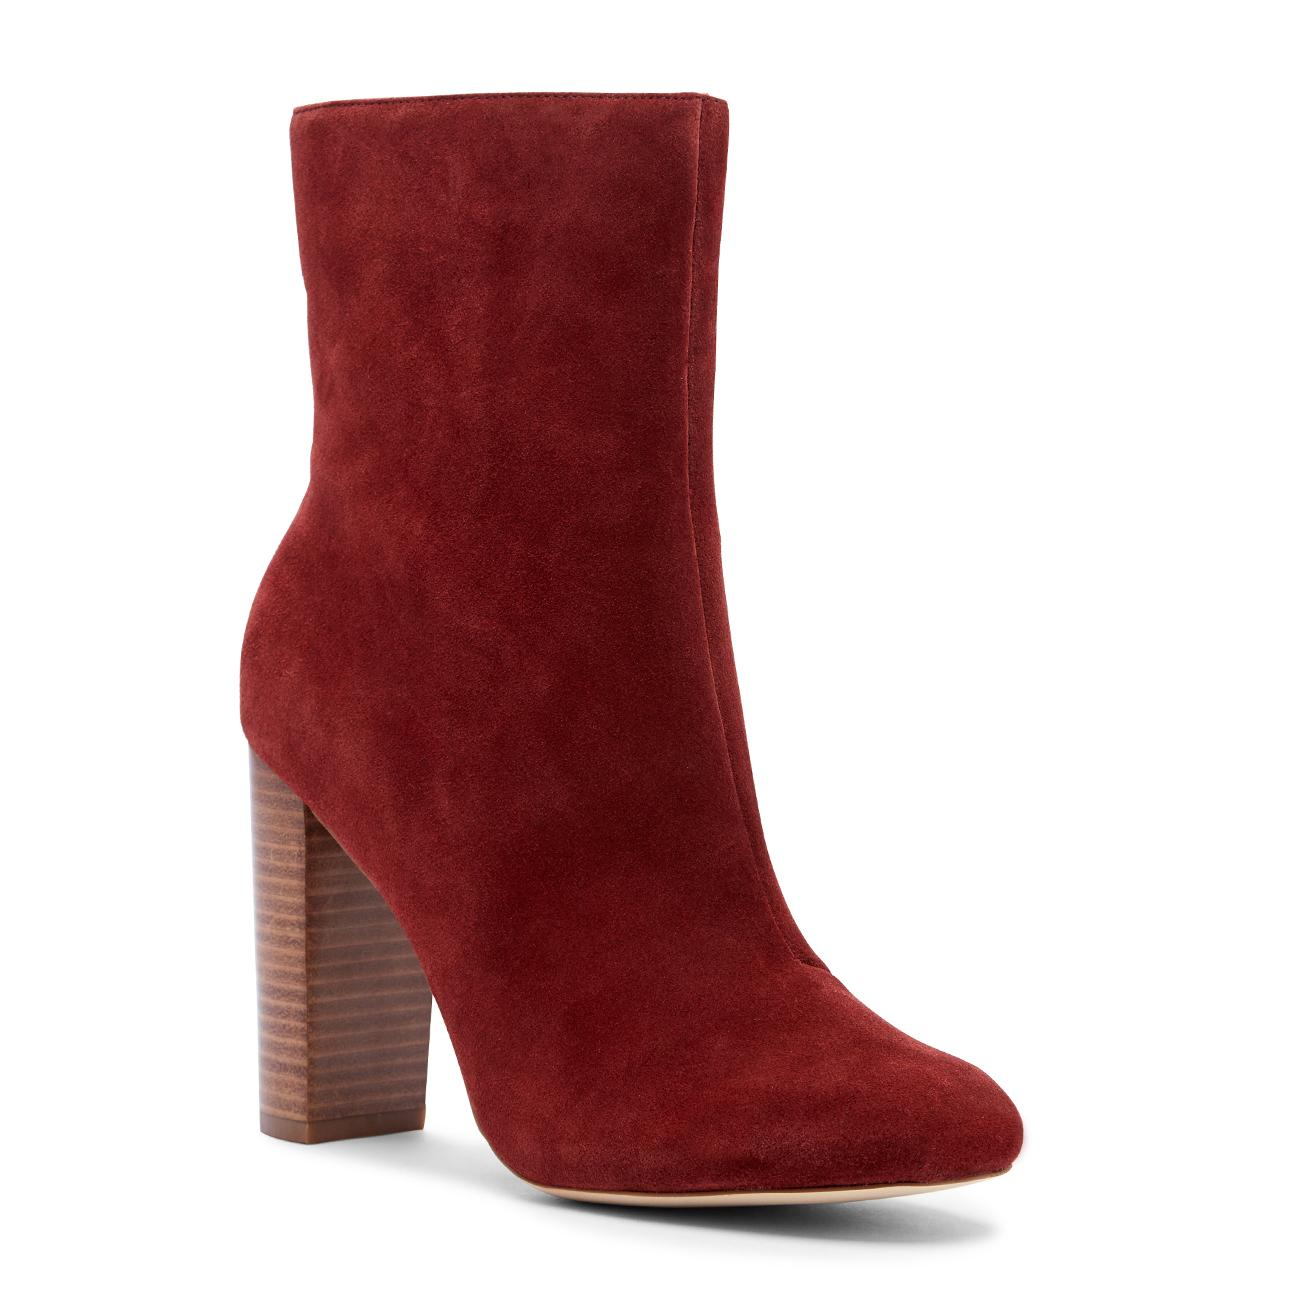 Sole Society Veronika – on sale for $43.98 // Solesociety.com (Photo courtesy: Sole Society)<p></p>